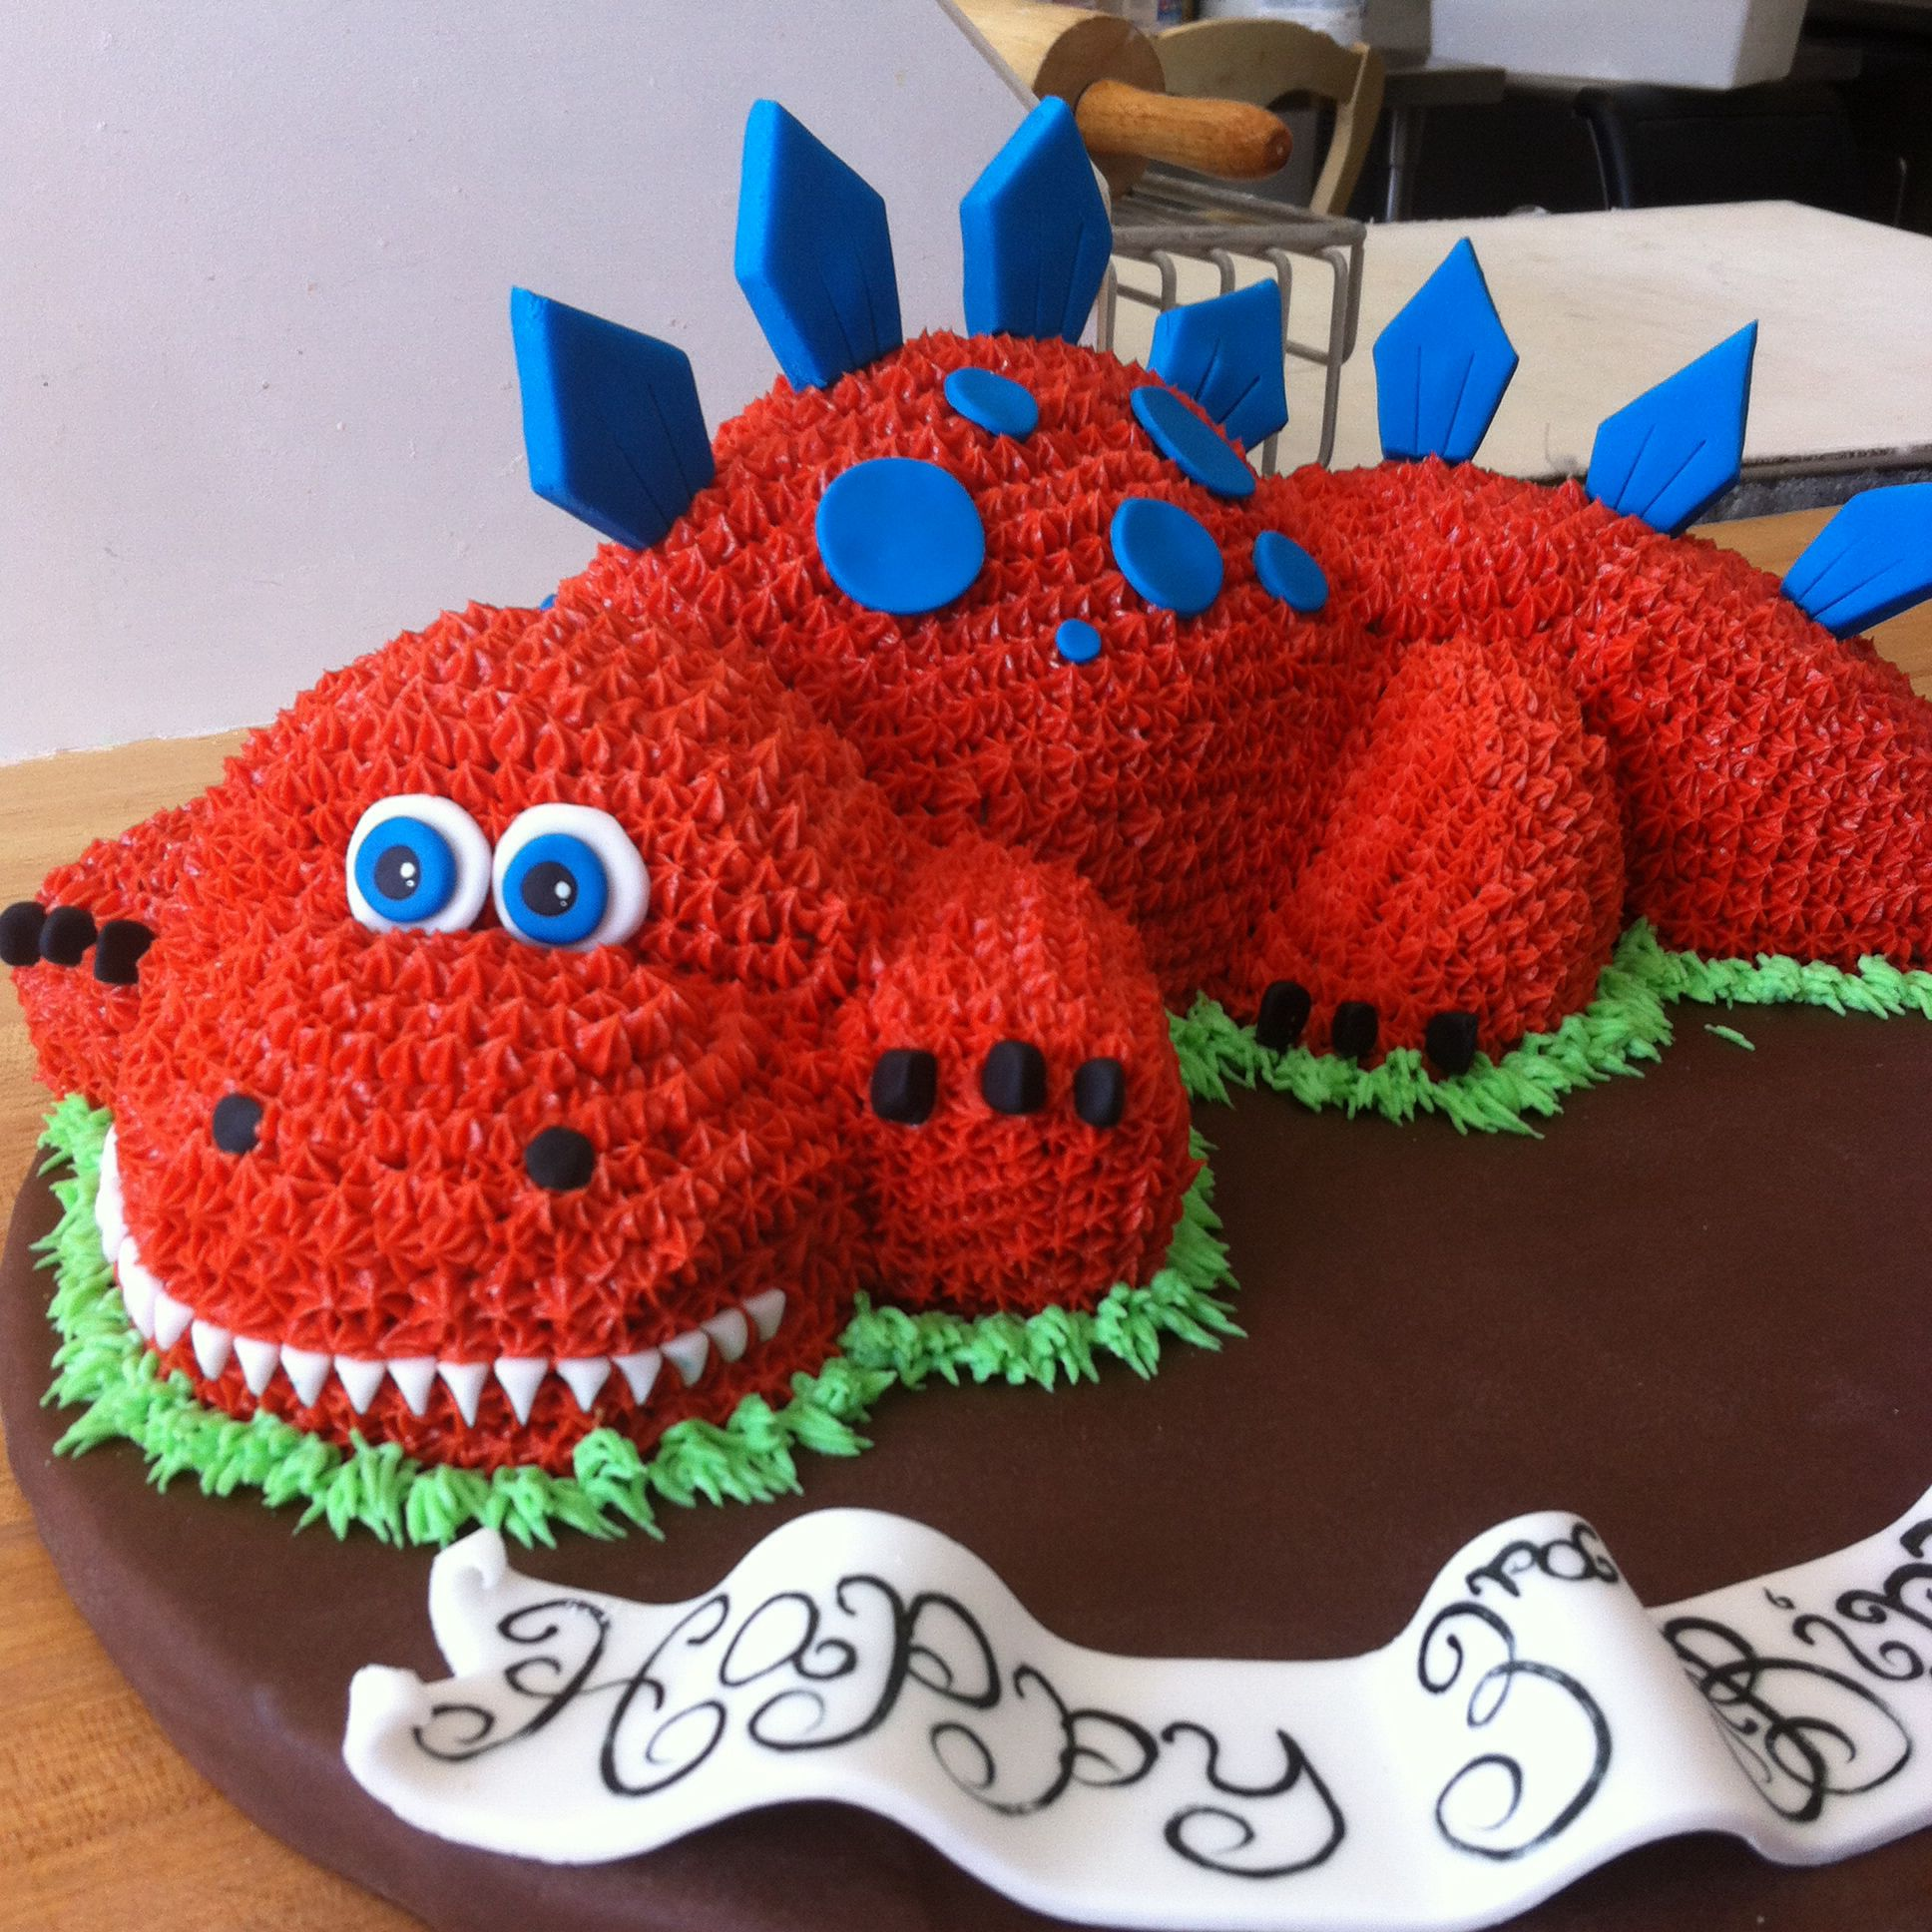 Dinosaur Birthdaycake For A Three Year Old Boy Tr3sbakers Made By Me